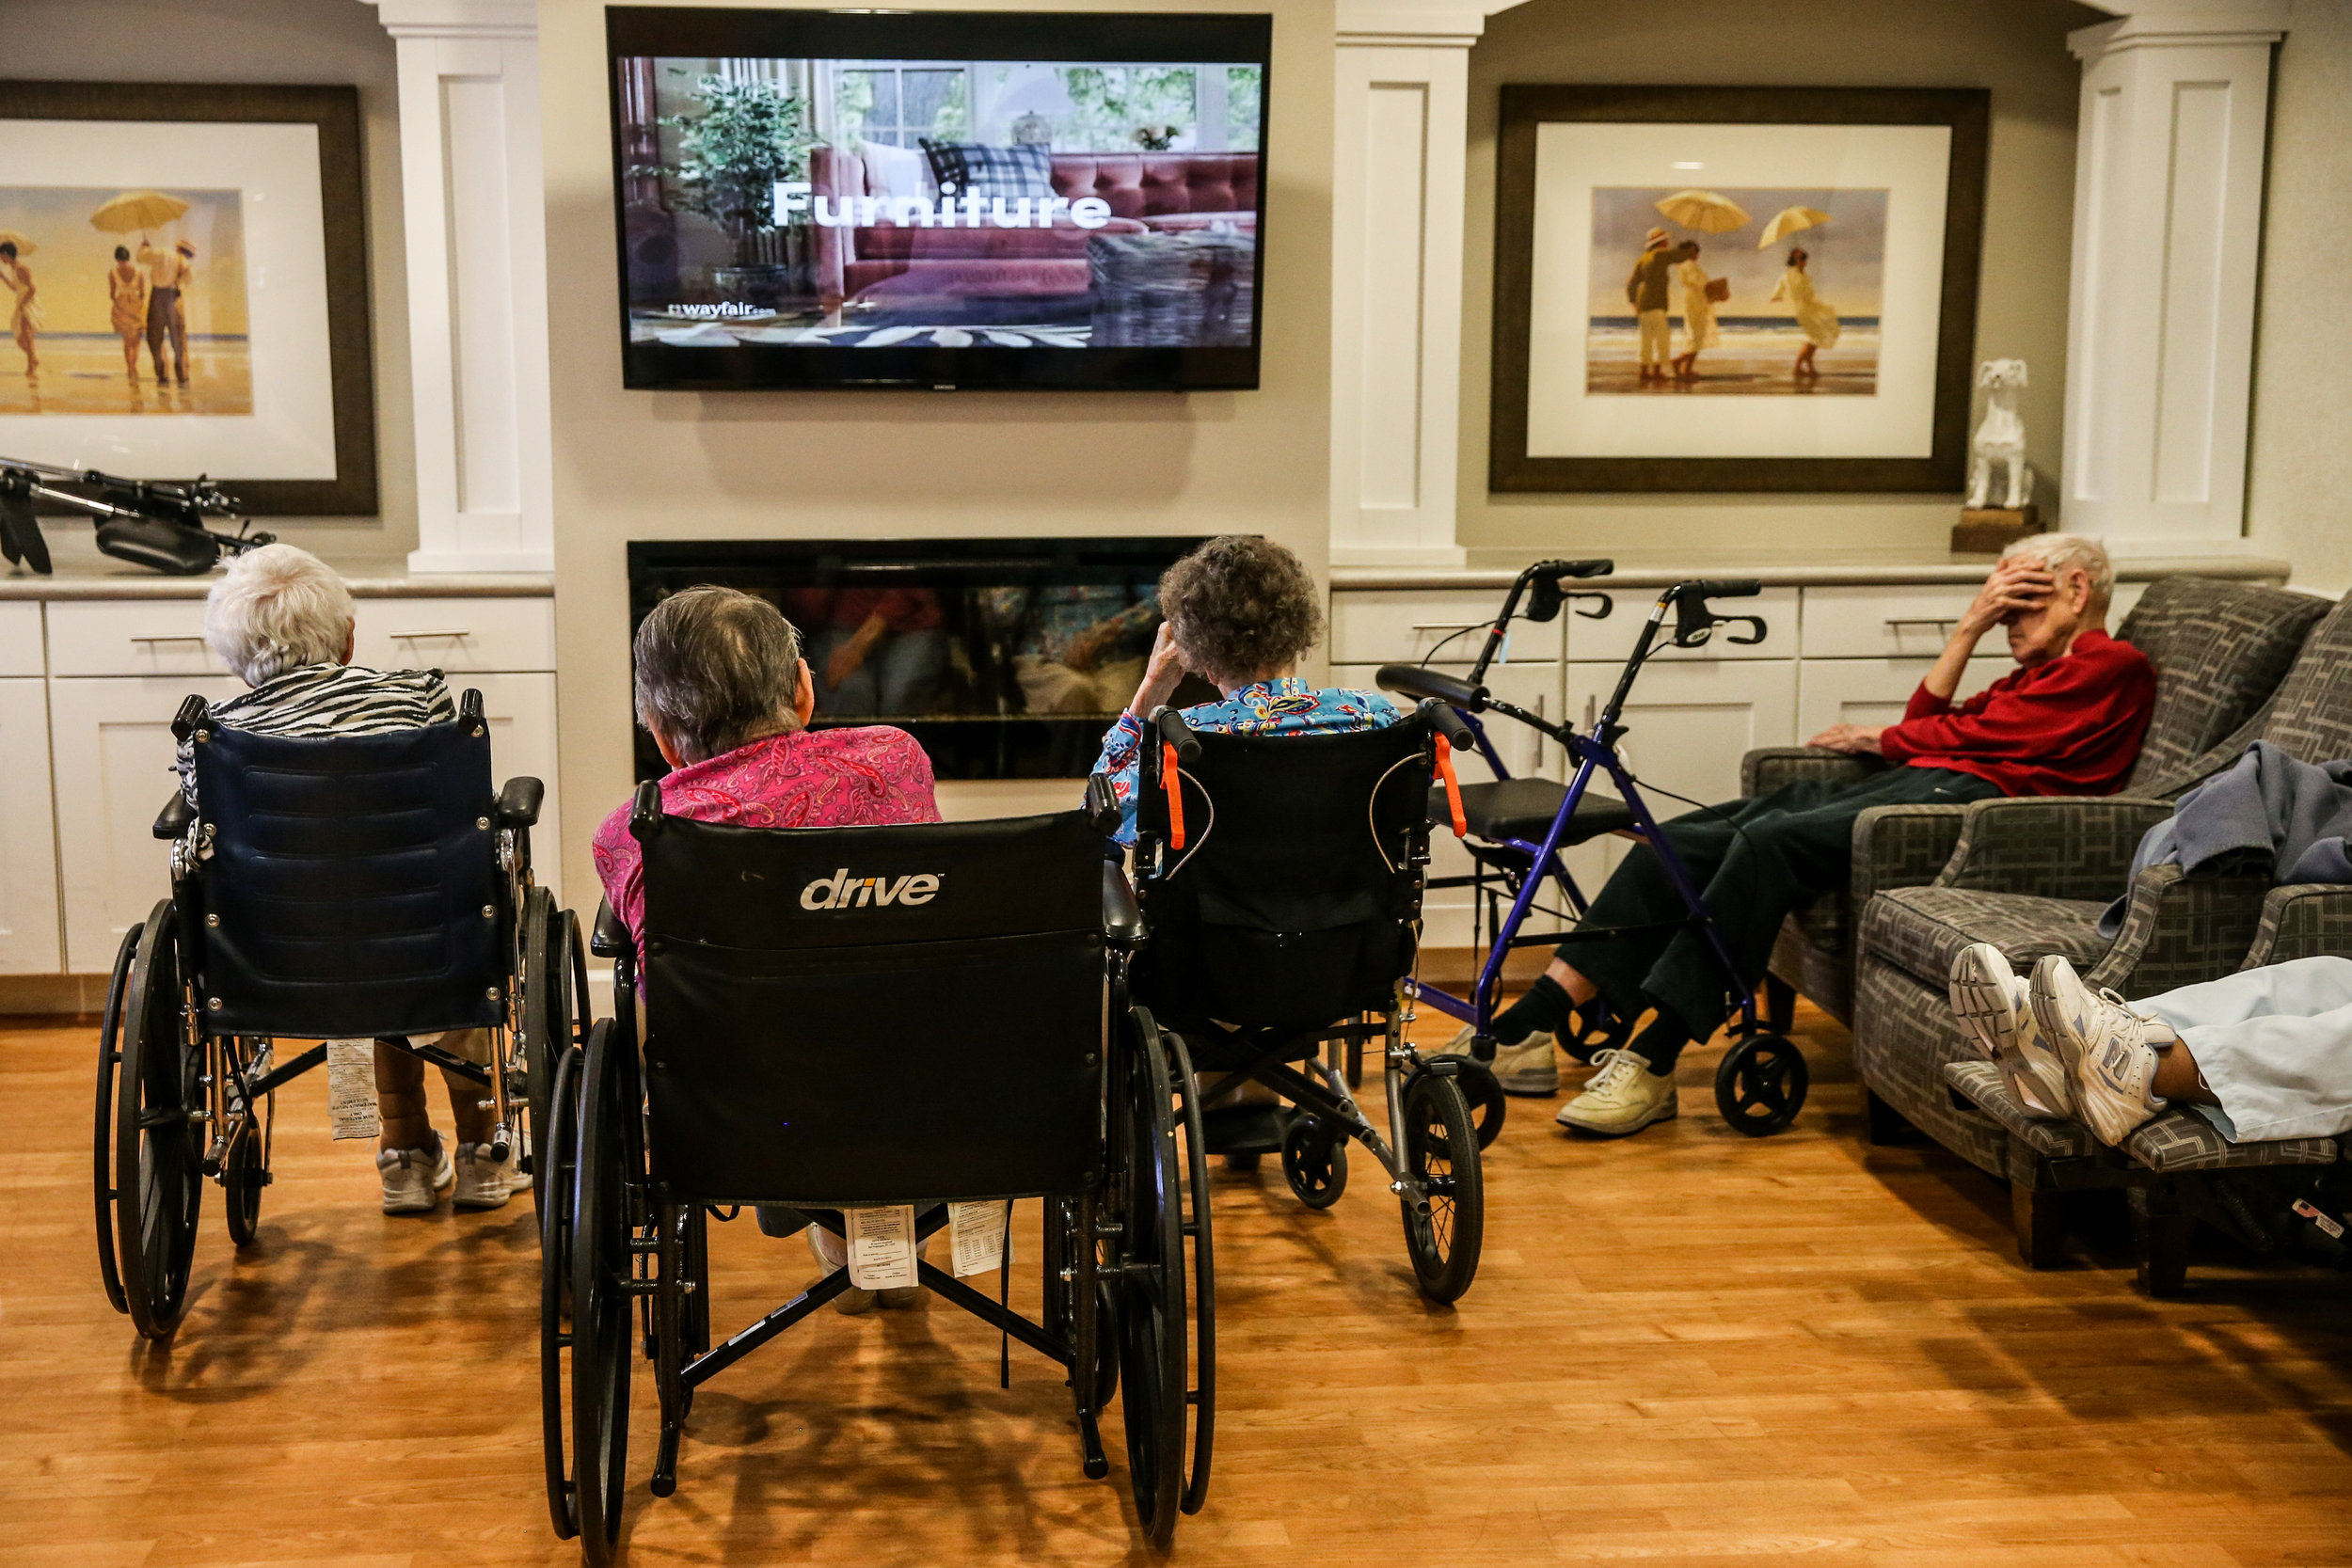 A group of patients watch television at the RoseWood Village assisted living home on Greenbrier Drive after lunch. Many patients suffer from degenerative brain diseases, making concentration and awareness difficult.